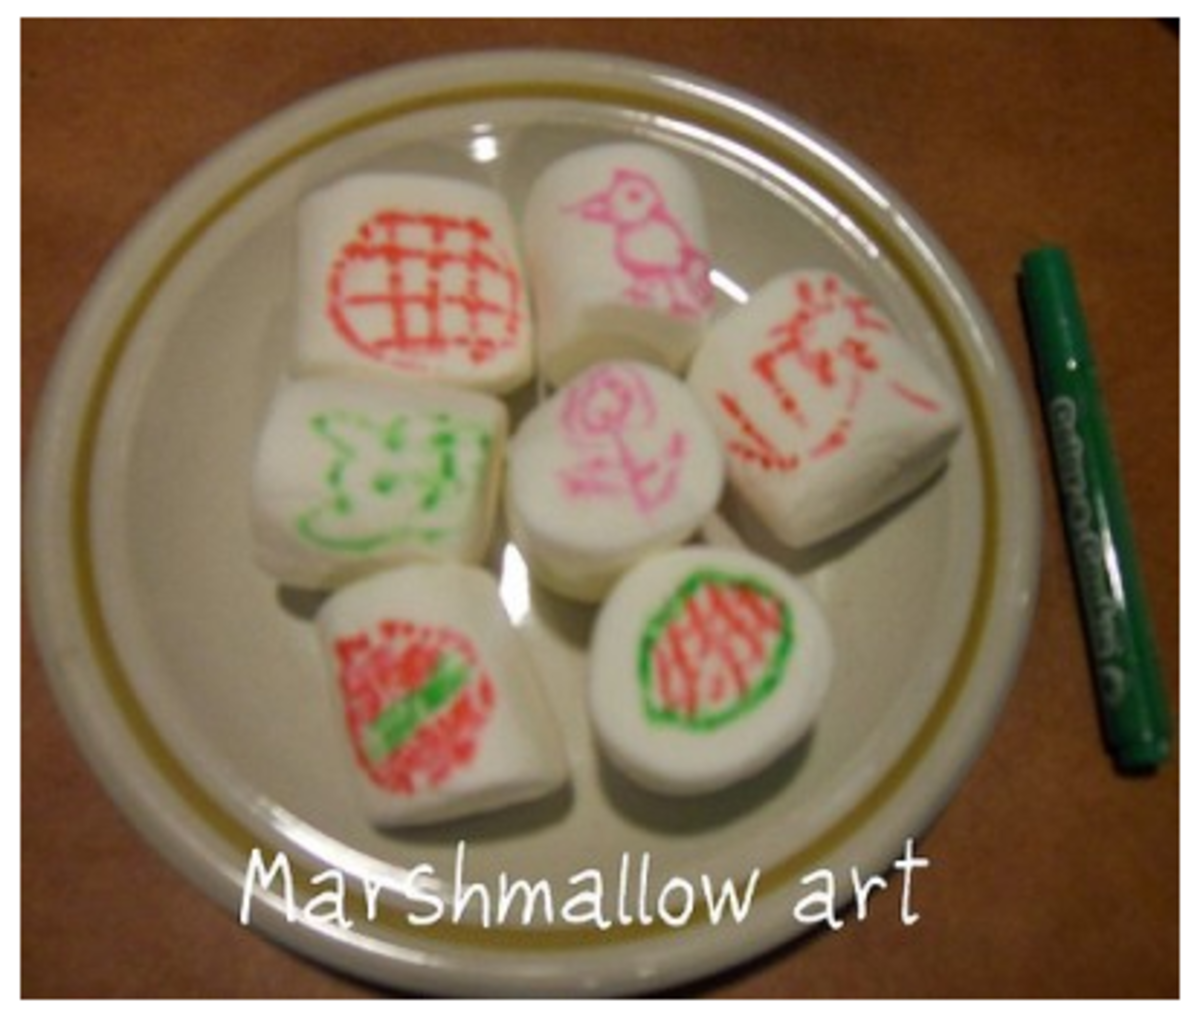 Marshmallow Art